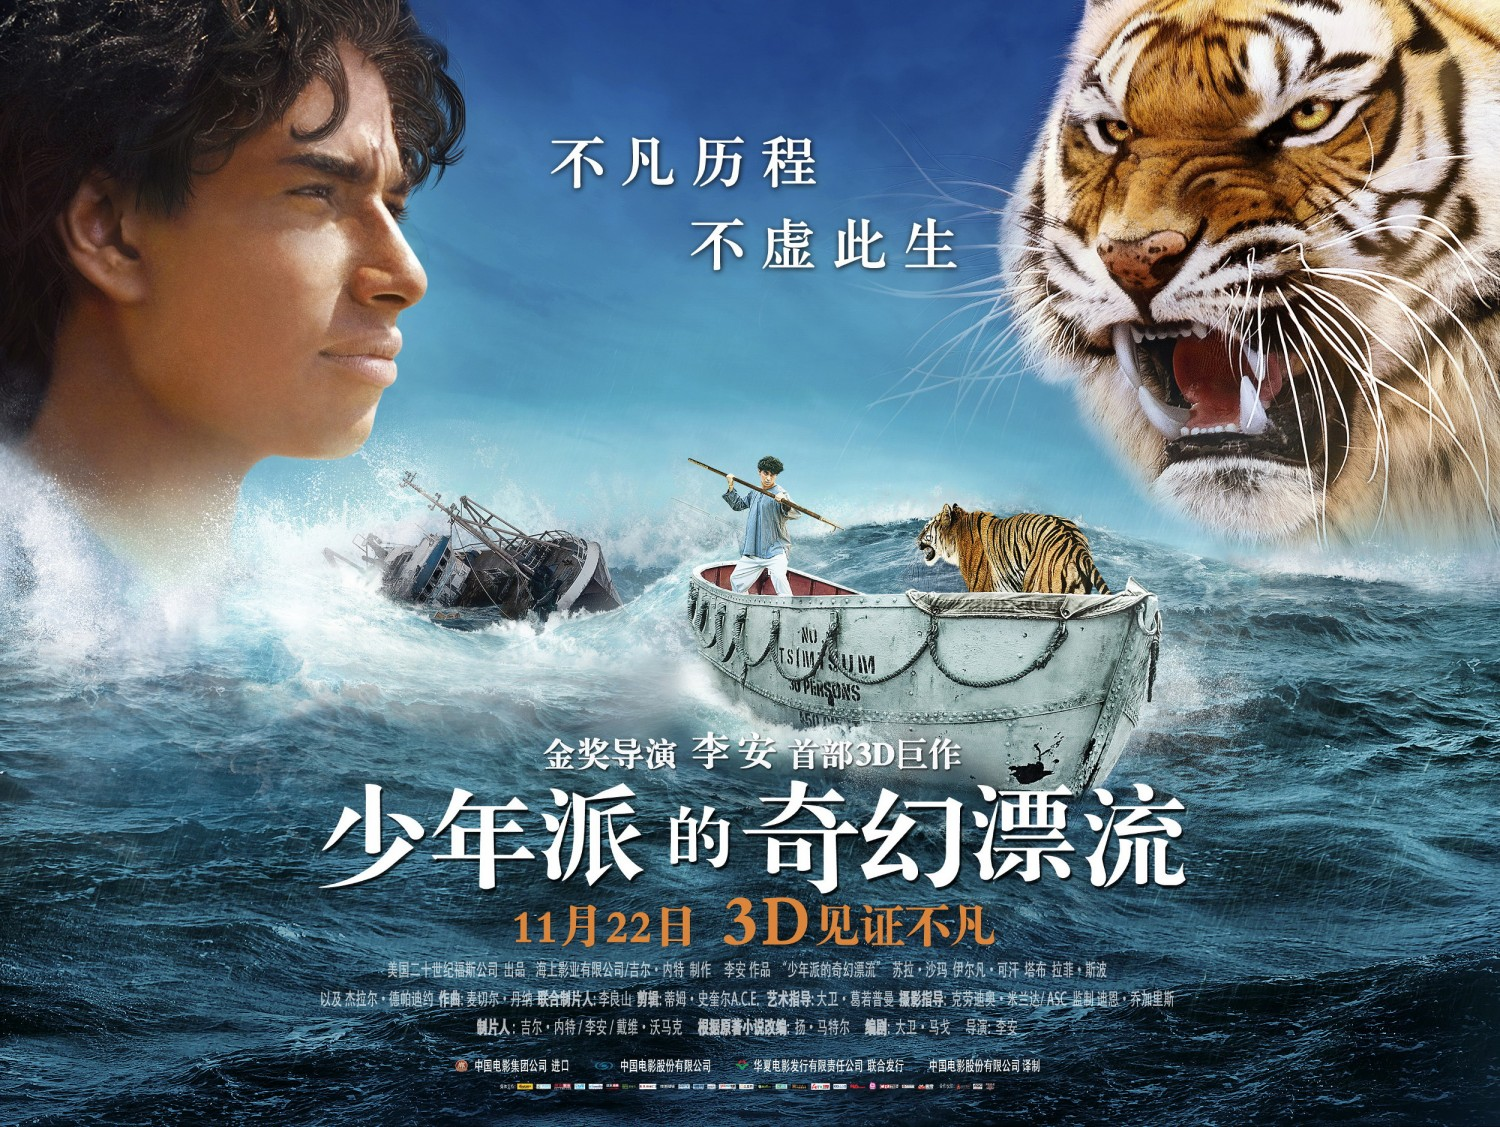 Youth journalism international february 2013 for Life of pi cast